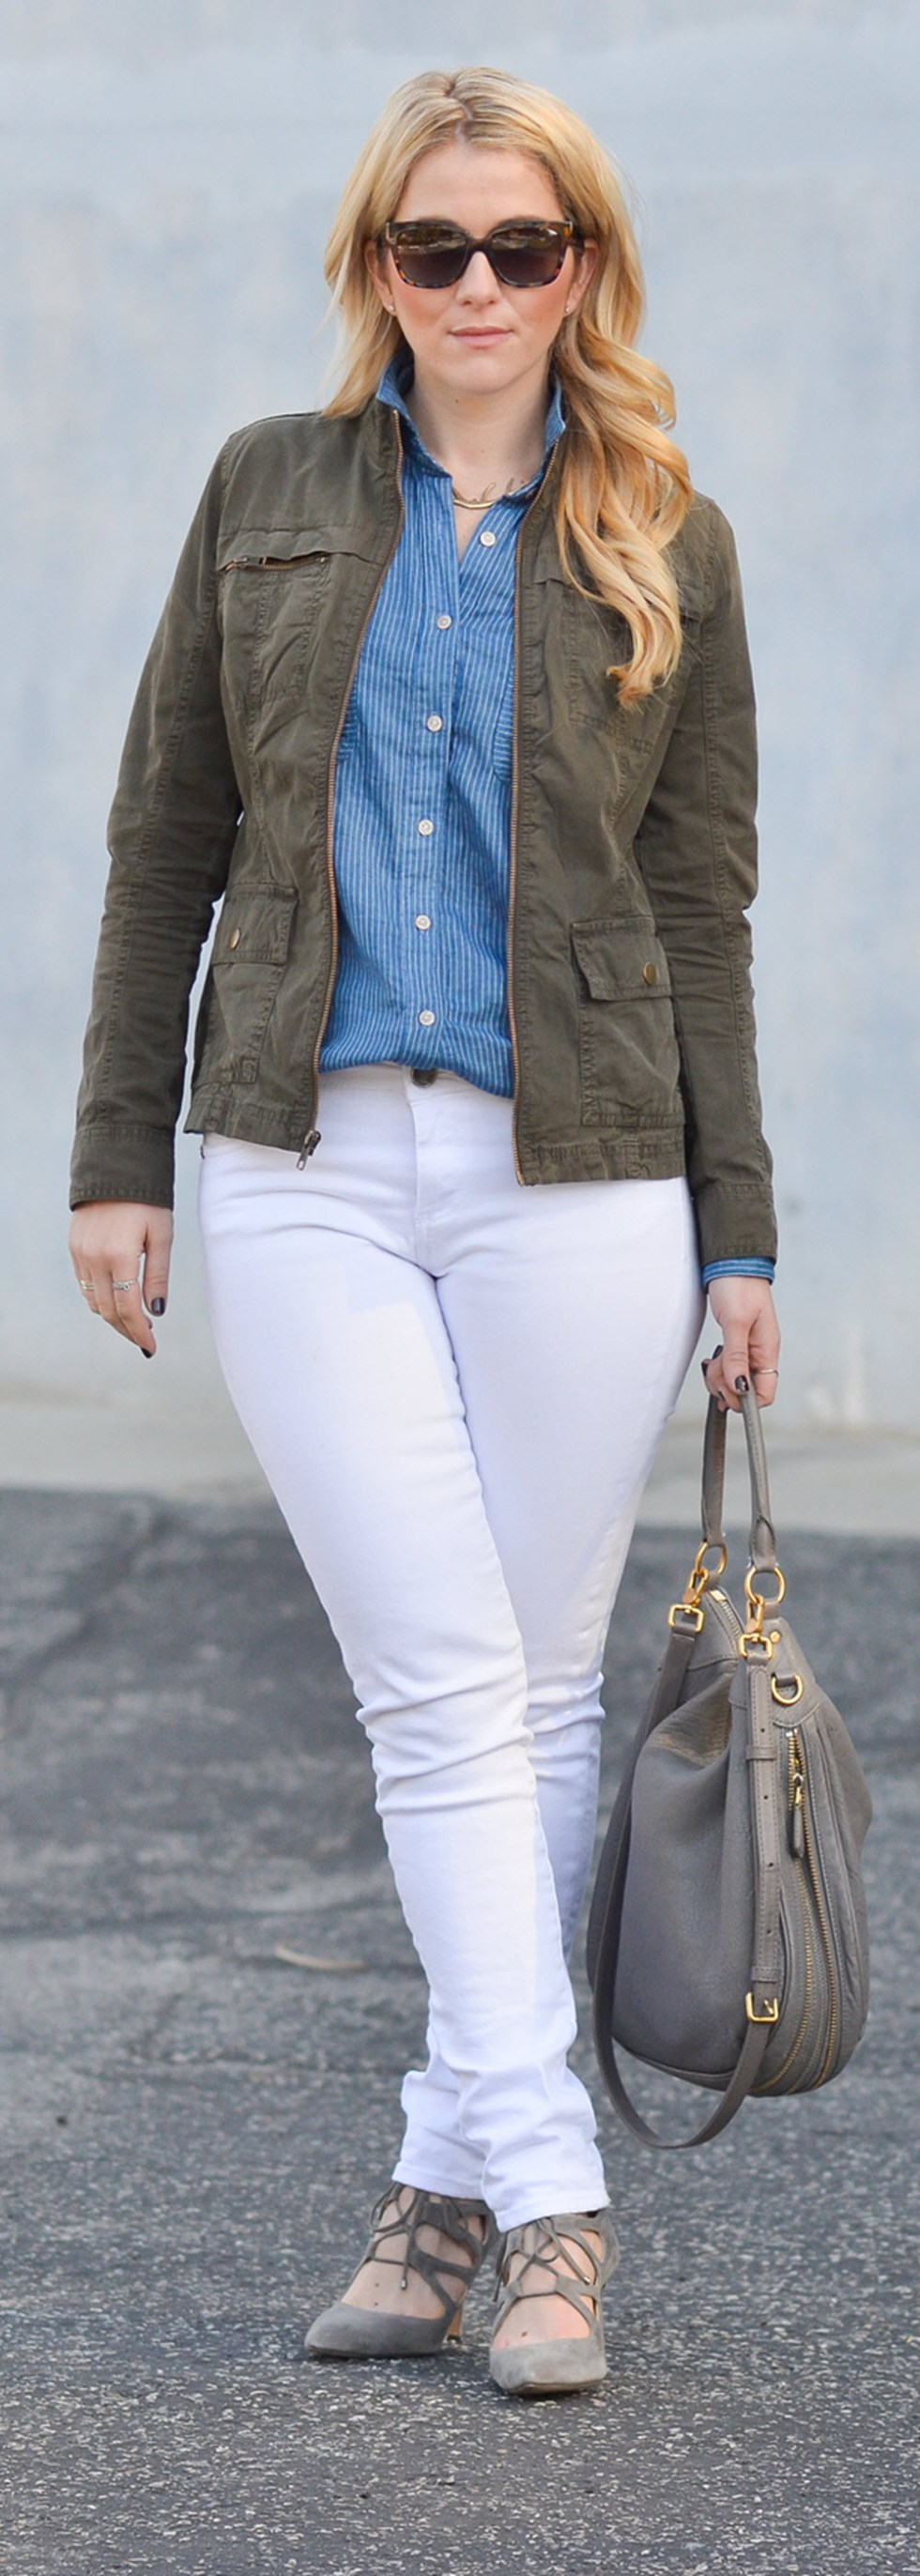 Wardrobe Essential  Military Jacket Outfit Ideas for Women